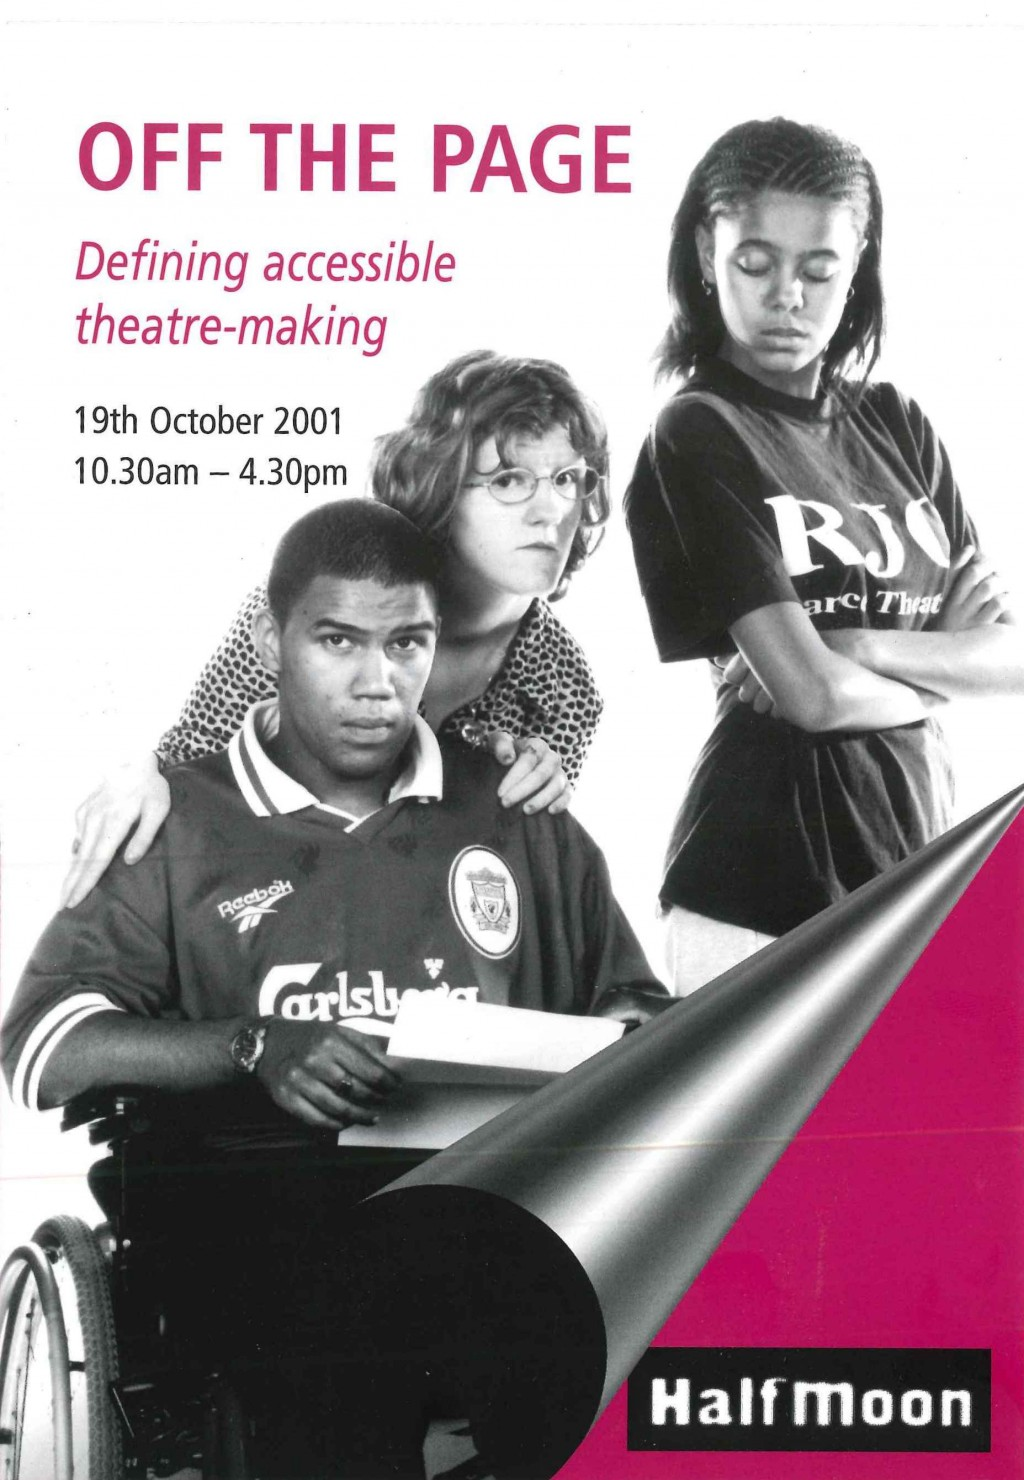 Off the Page 2001 - Flyer (front)